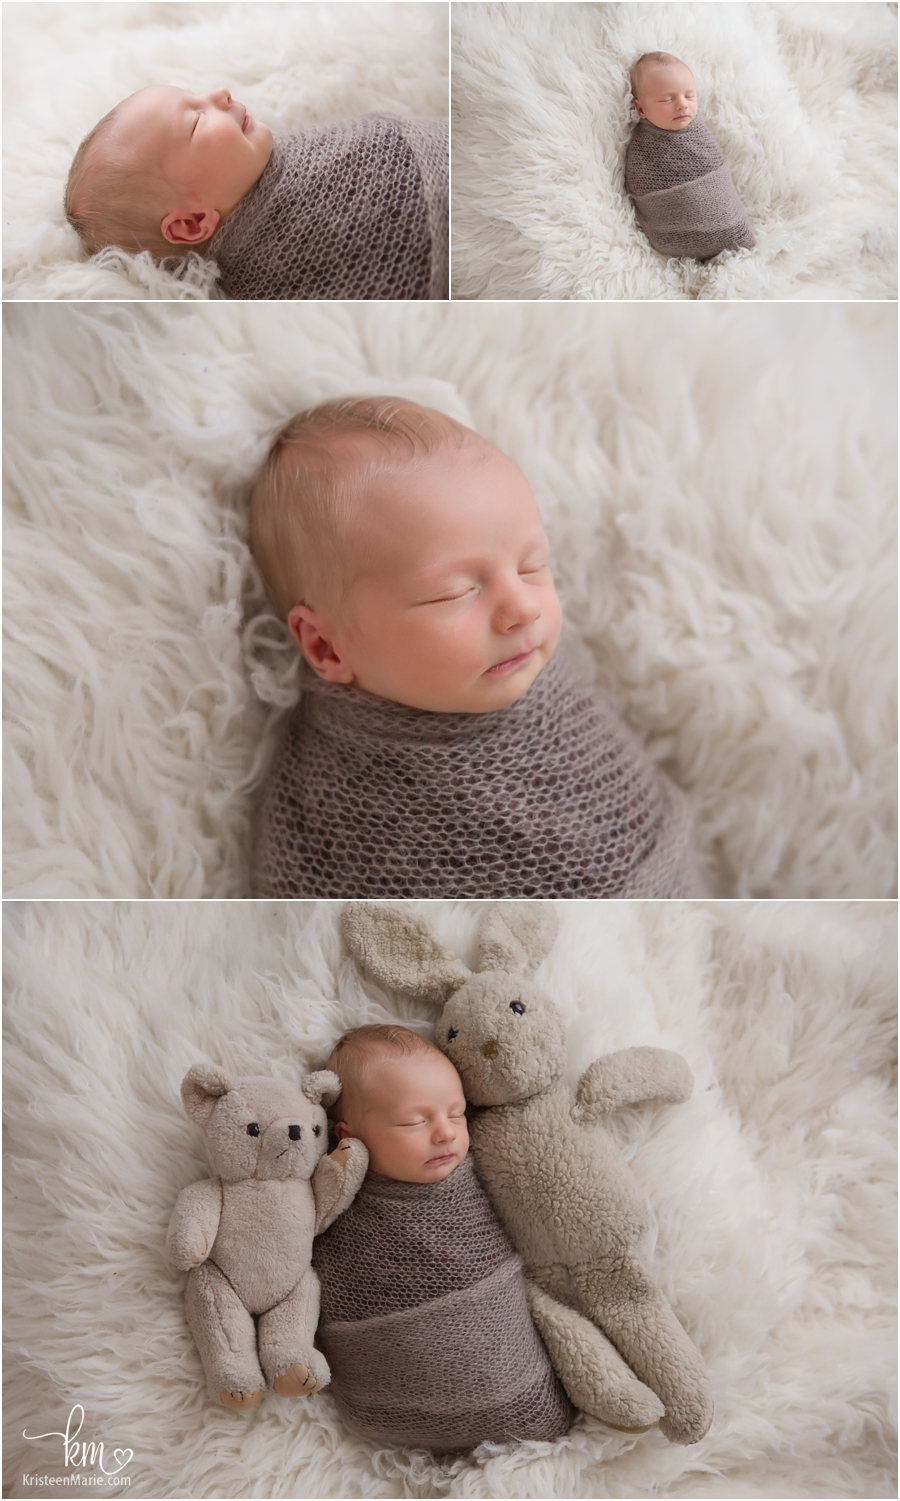 sleeping newborn boy in brown and cream - mom's childhood toy is on the right and dad's is on the left